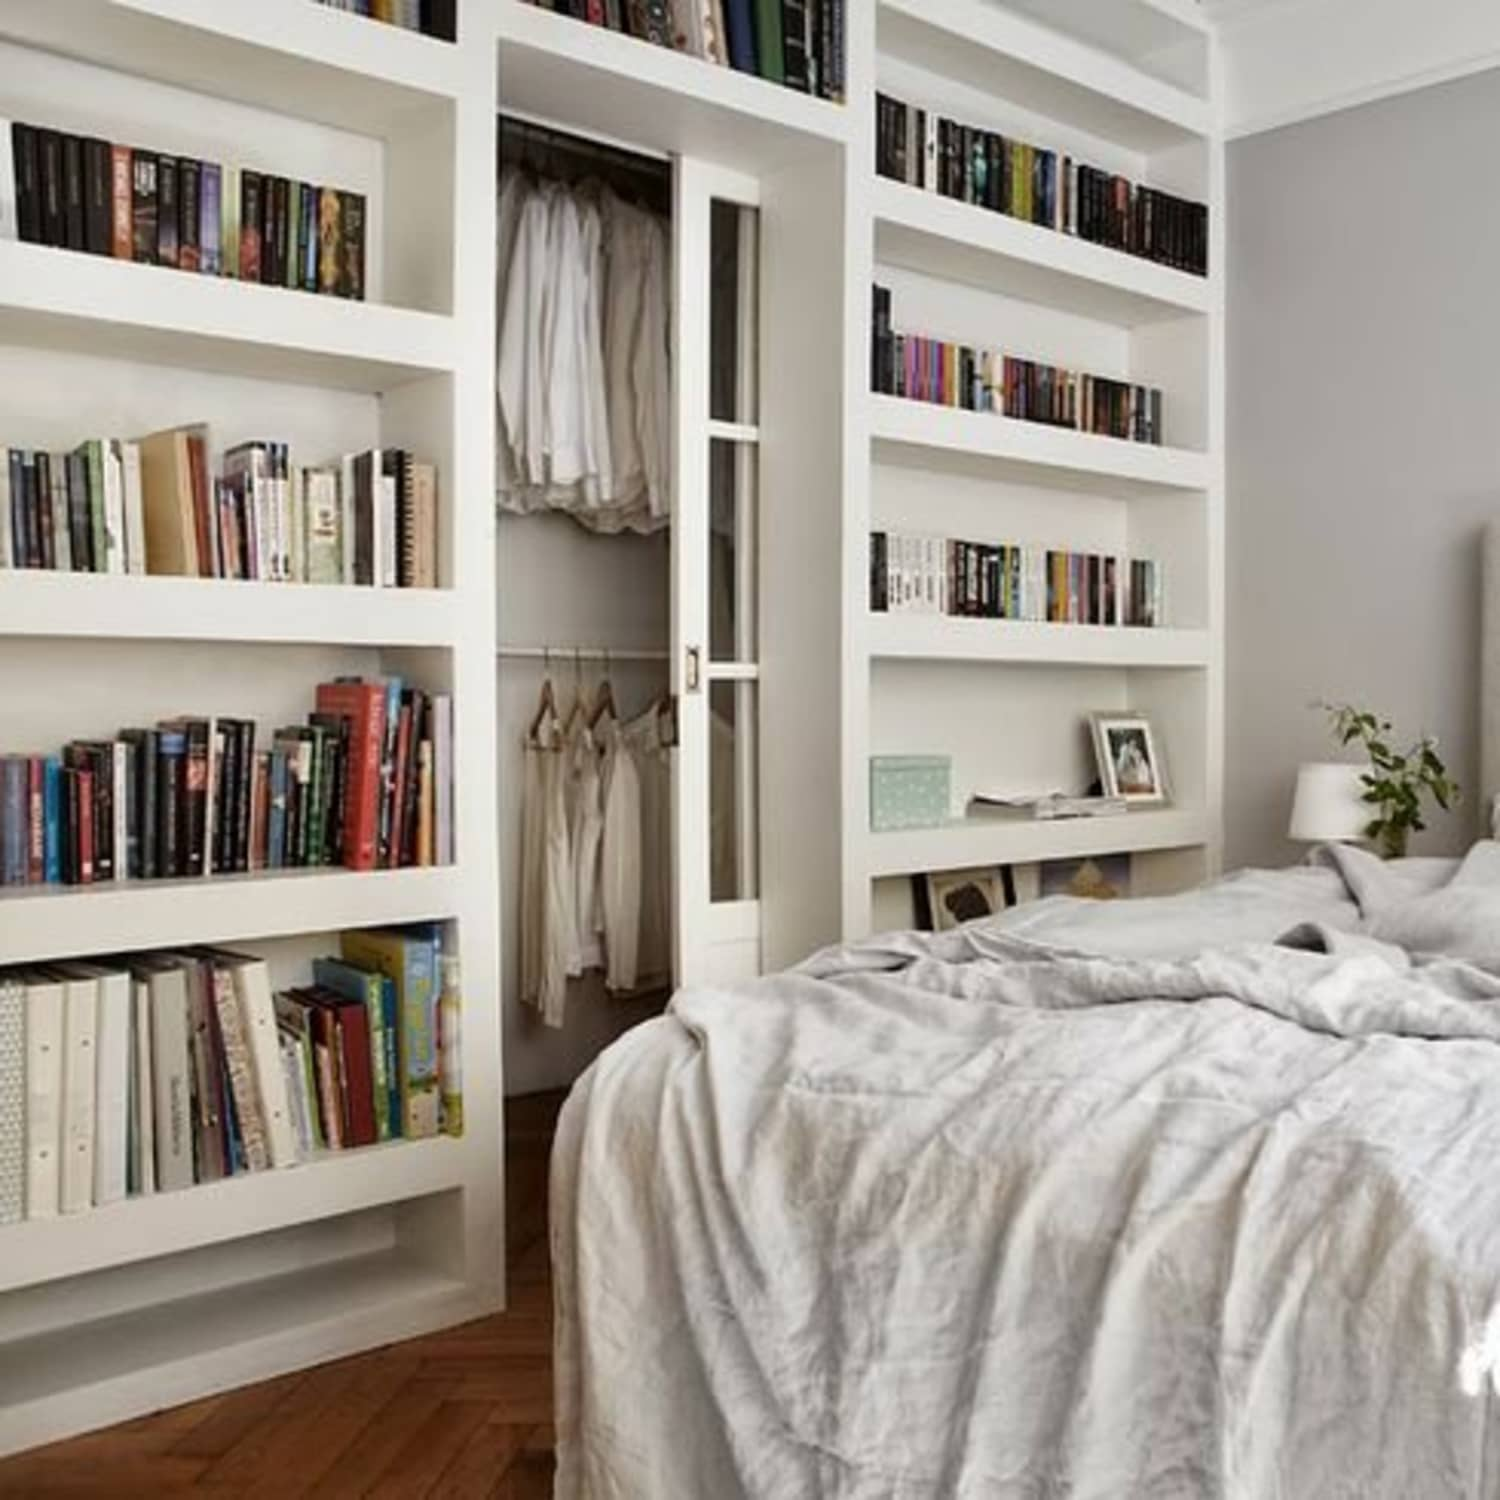 Renovation Inspiration: Make the Most of Your Bedroom with Smart ...